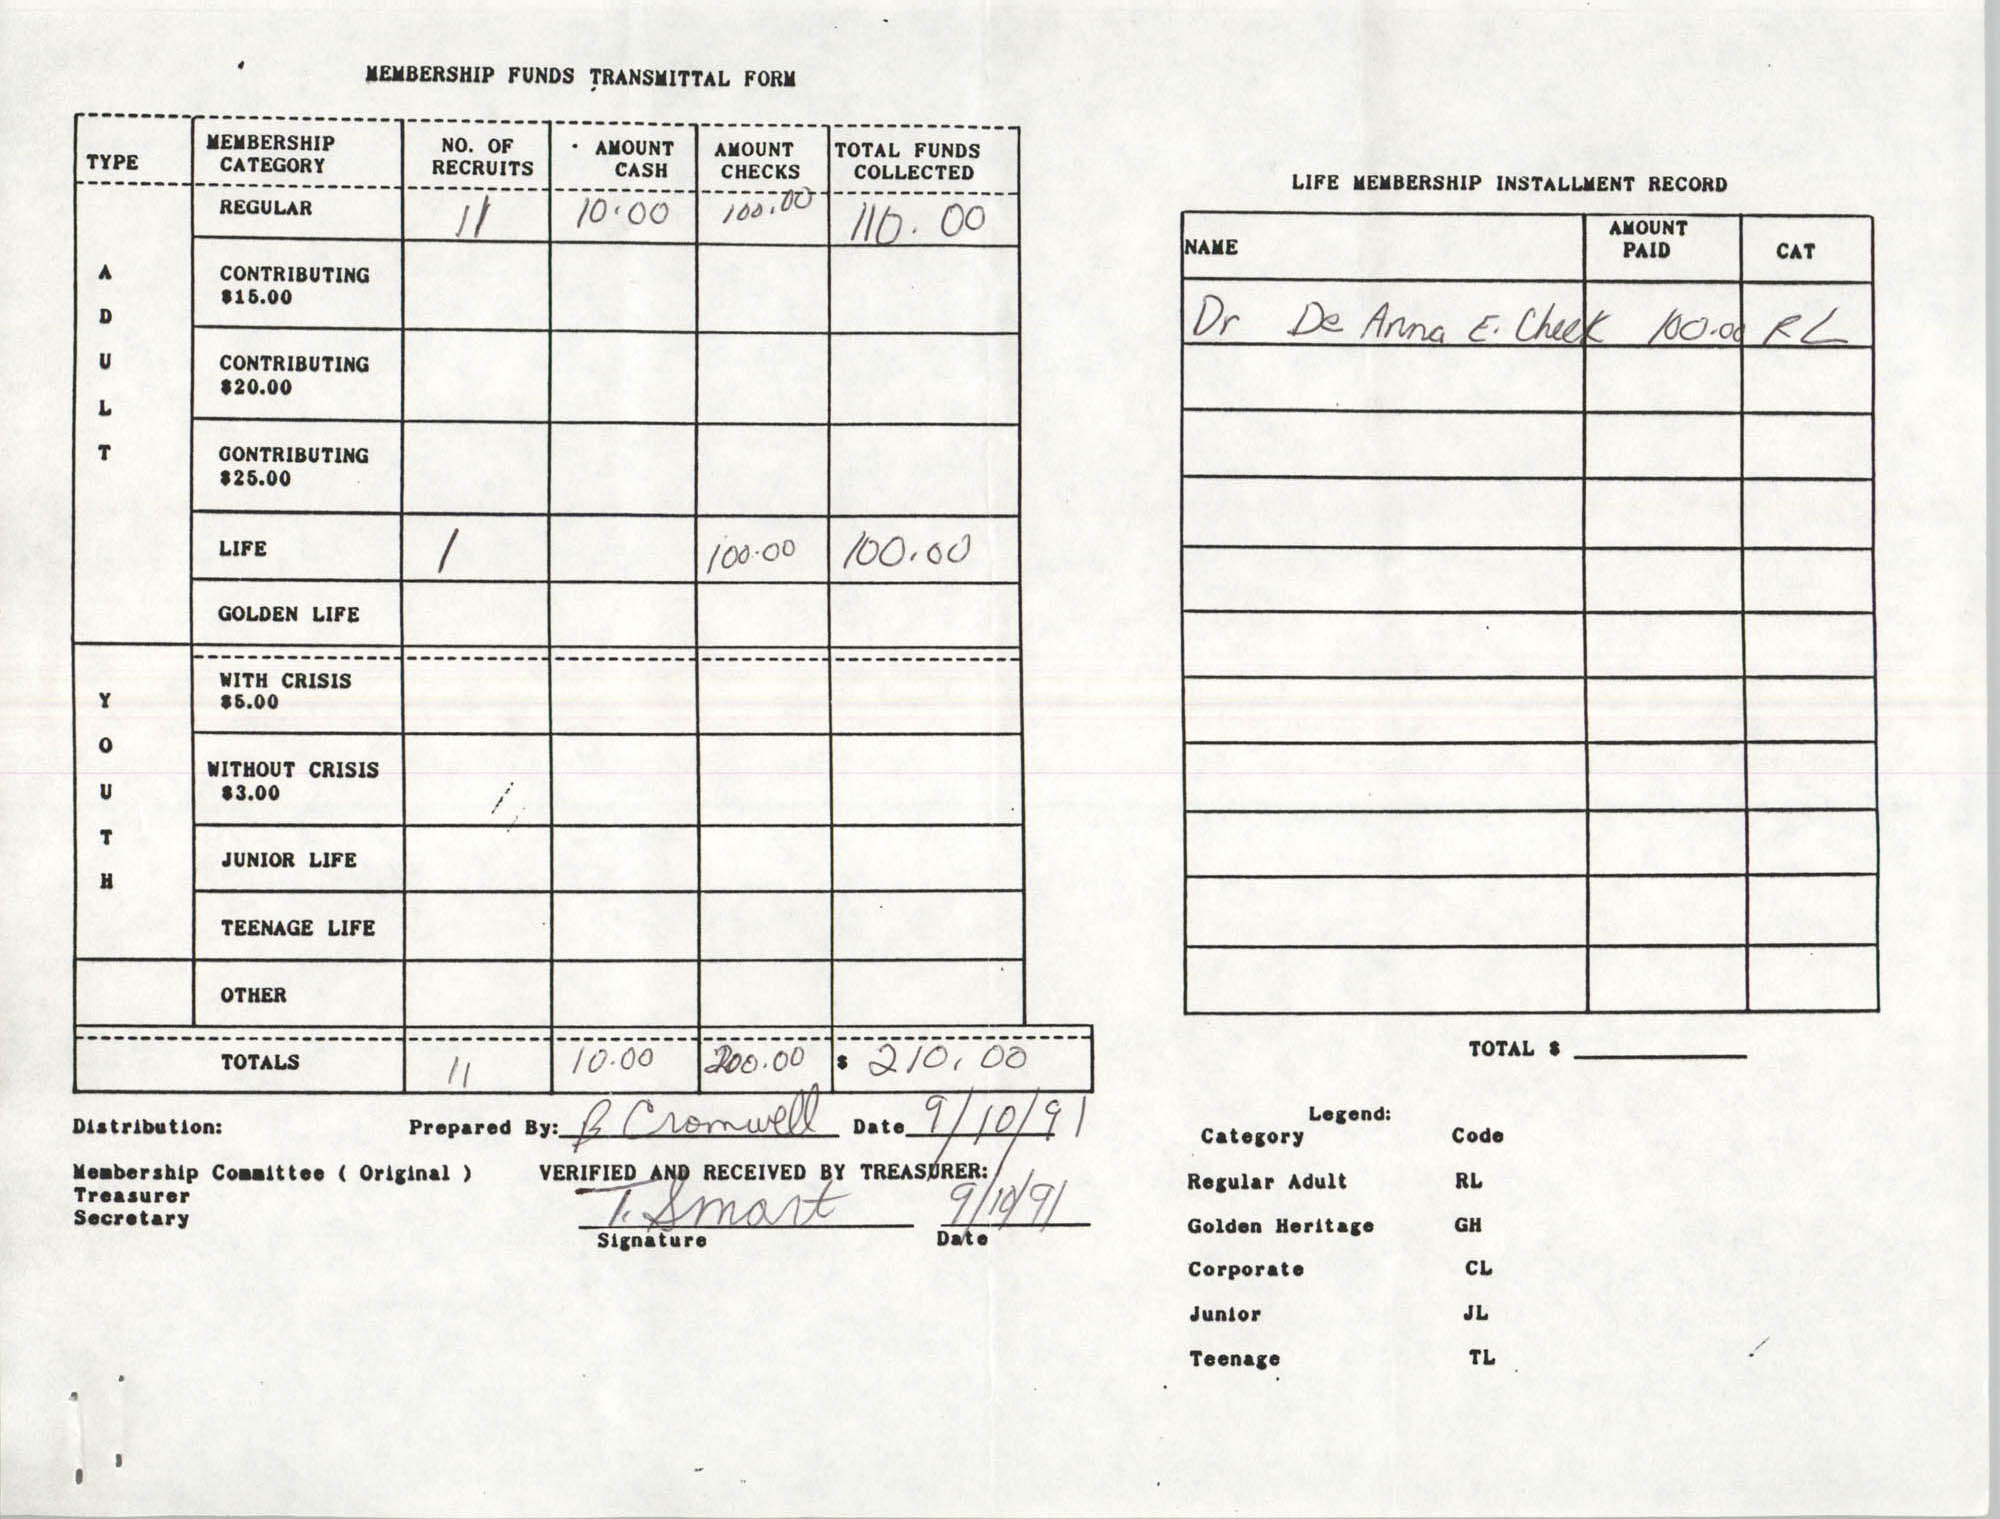 Charleston Branch of the NAACP Funds Transmittal Forms, September 1991, Page 18